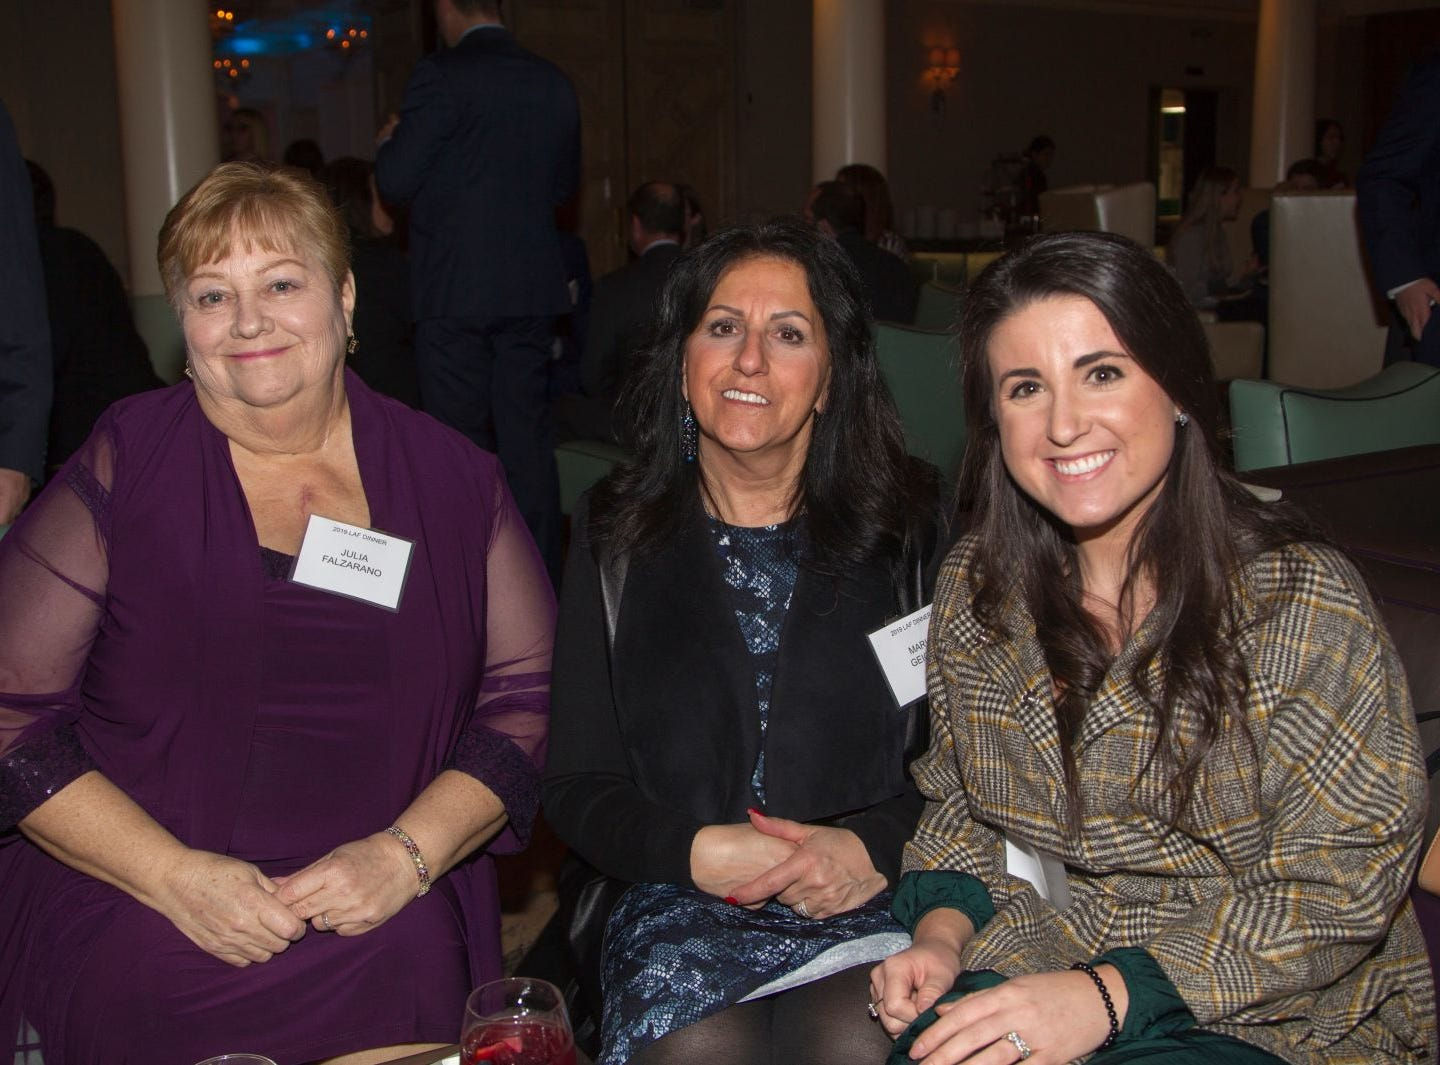 Julia Falzarano, Maria Geiger, Jenny Show. Eva's Village hosted its second annual Lawyers, Accountants and Financial Professionals Benefit Dinner at Westmount Country Club in Woodland Park. 02/21/2019